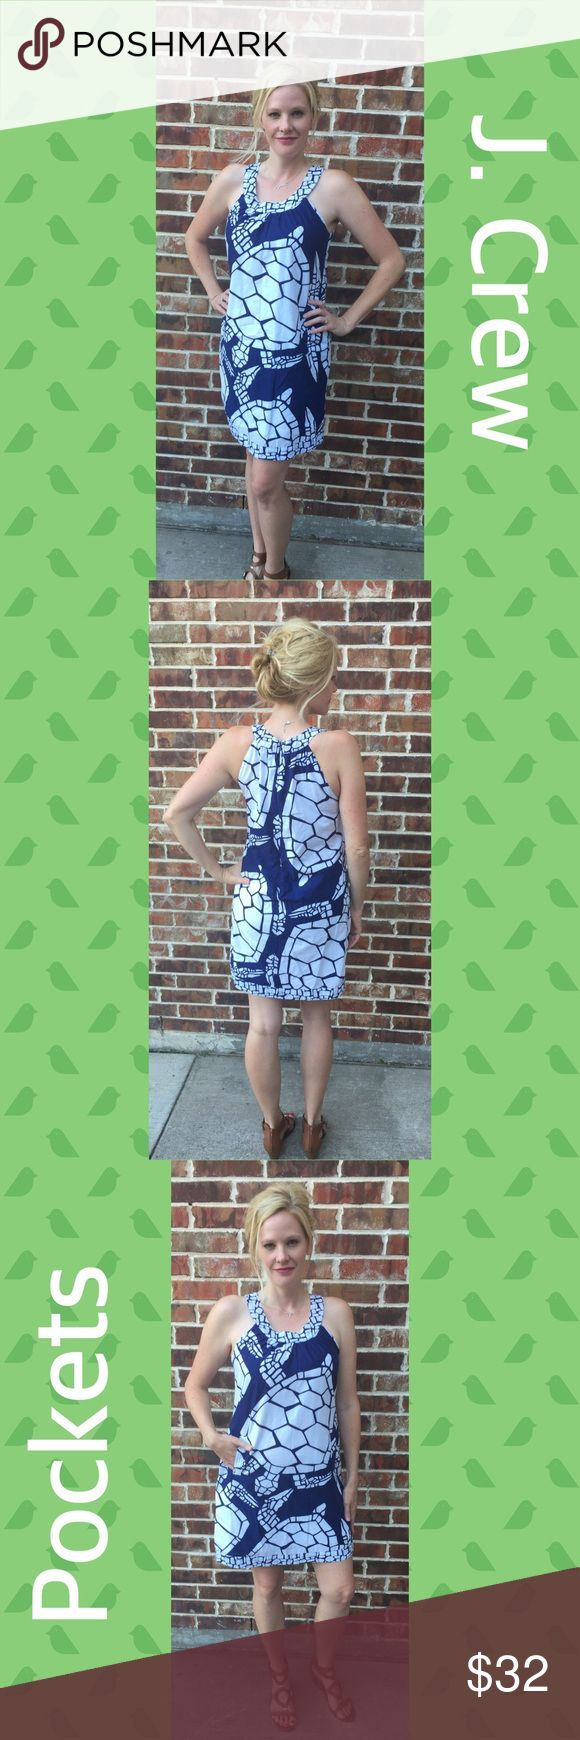 """J. Crew summer print turtle dress 🐢 Summery turtle print navy and white J. Crew dress with pockets. Unfortunately the size tag is missing so I am listing as a medium. I am about 5' 8.5"""" and wear an 8 in Gap clothing if that helps. Approximate measurements: Bust: 19""""▫️Waist 19.5"""" laid flat and measured across▫️Length: 36"""" J. Crew Factory Dresses Midi"""